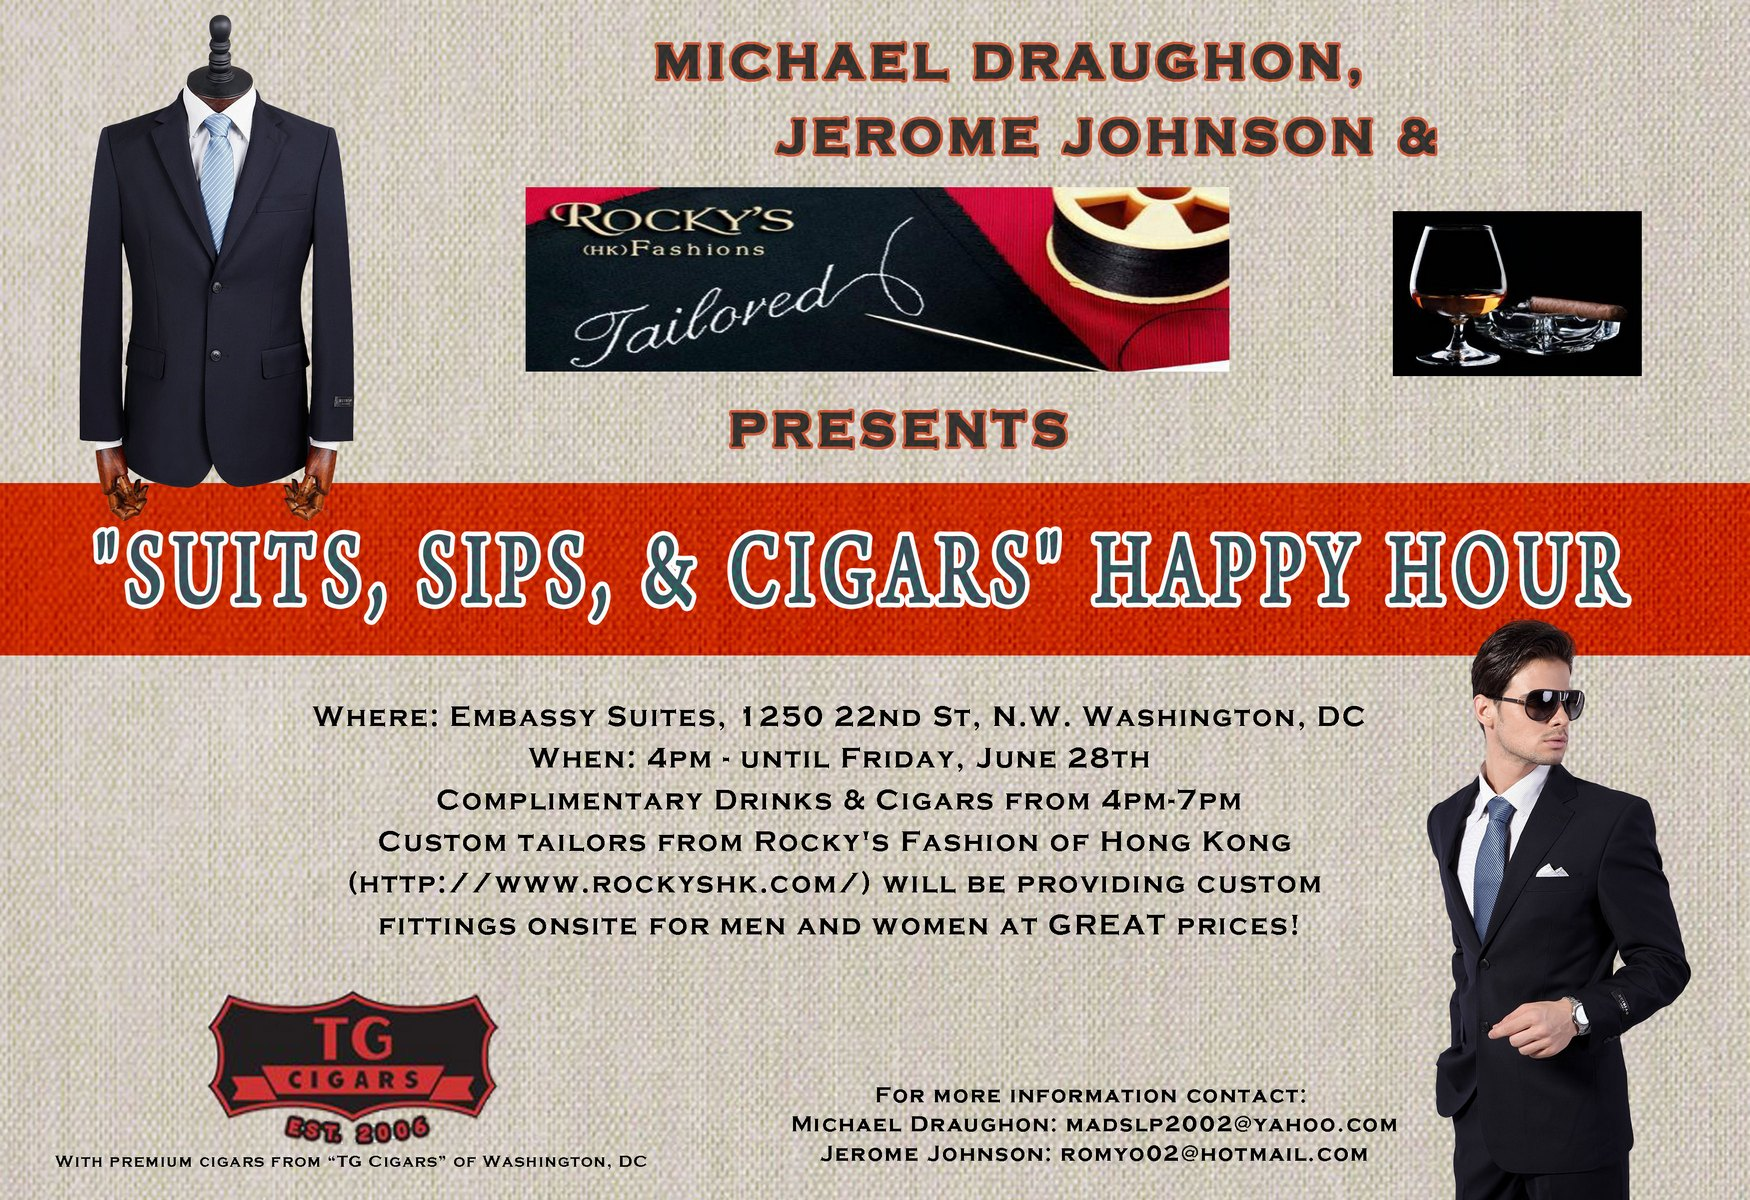 Event flier for Suits Sips Cigars